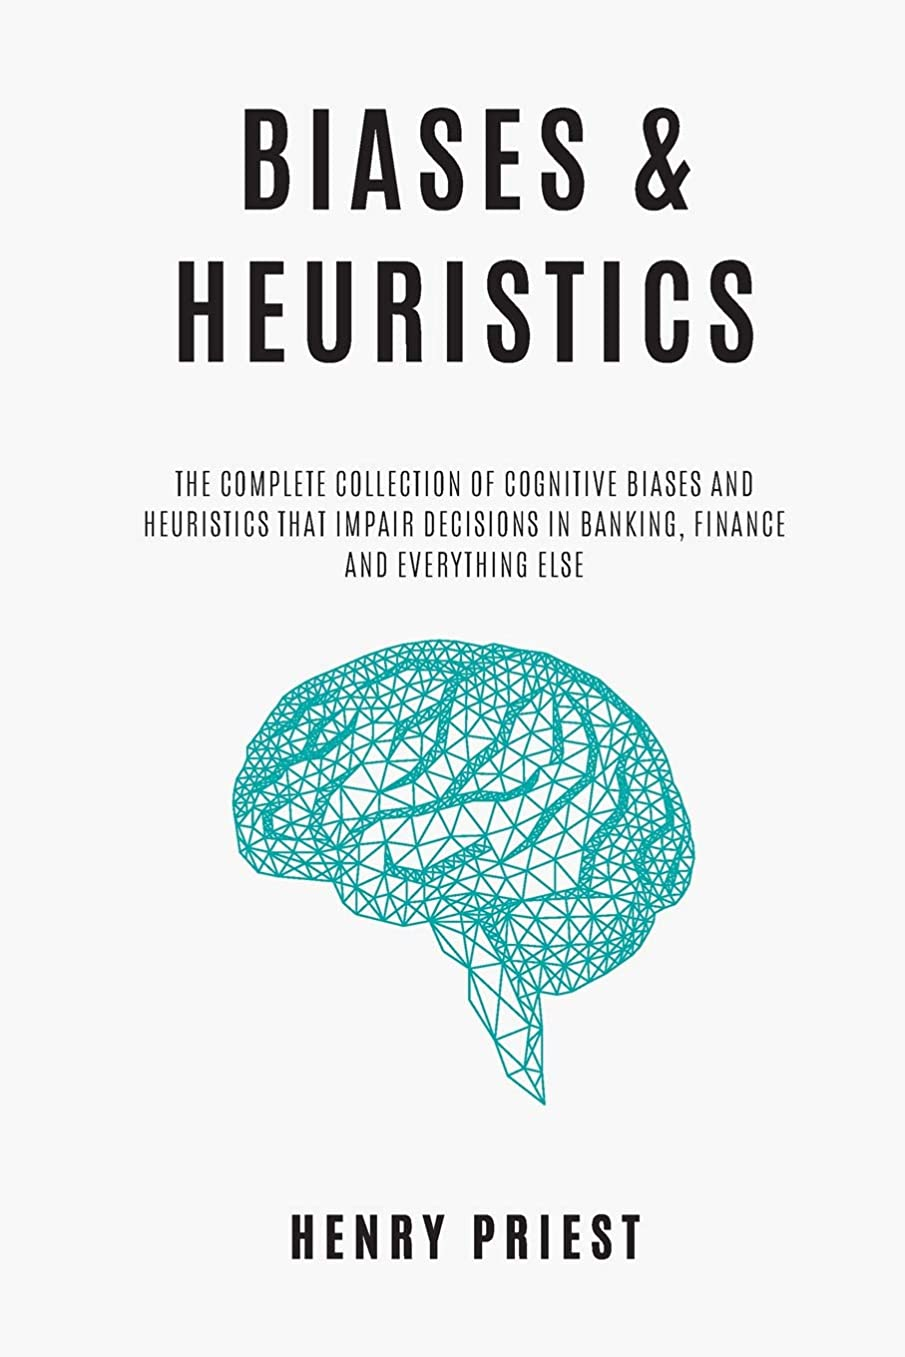 受け入れた勝者シリングBIASES and HEURISTICS : The Complete Collection of Cognitive Biases and Heuristics That Impair Decisions in Banking, Finance and Everything Else (The Psychology of Economic Decisions)